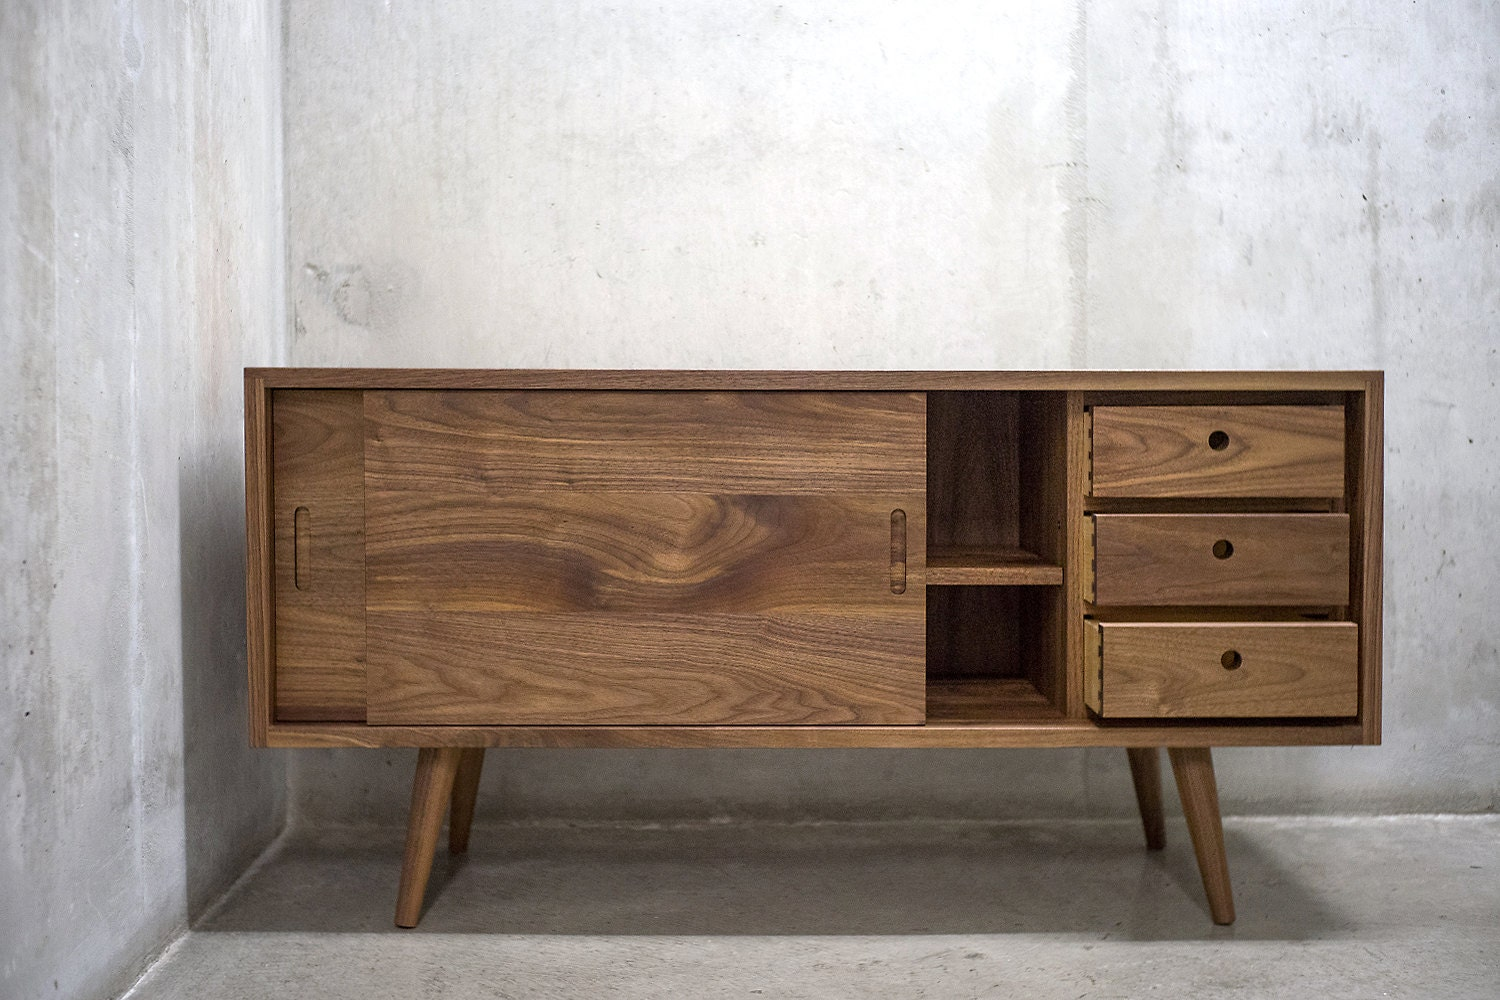 Solid White Oak Credenza/ Sideboard/ Cabinet/ Media Console